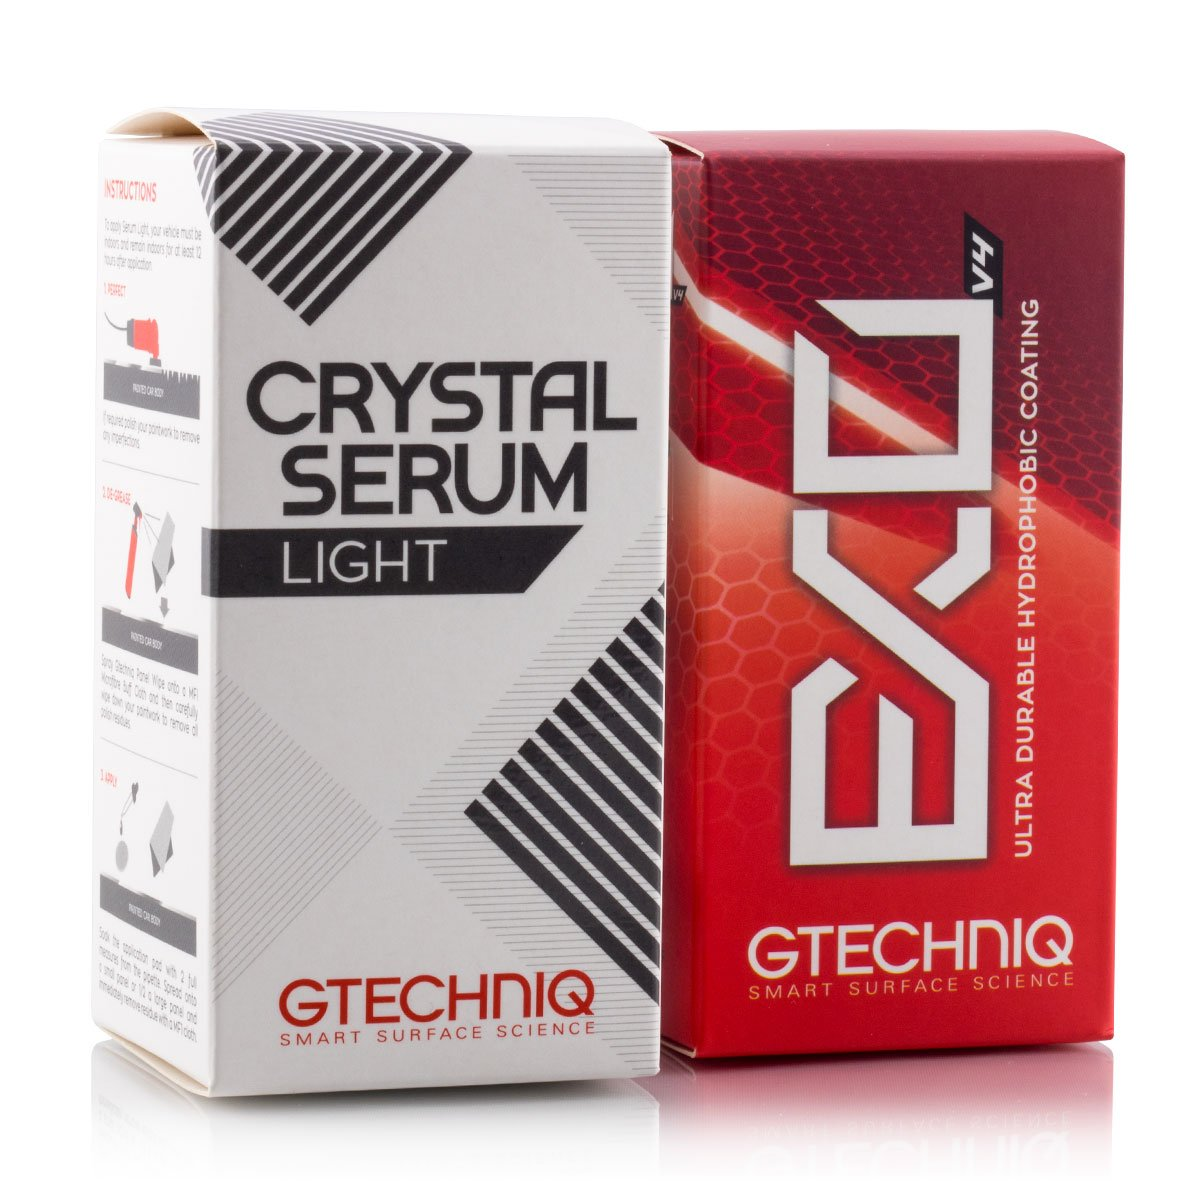 Gtechniq Crystal Serum Light & EXO v4 Kit